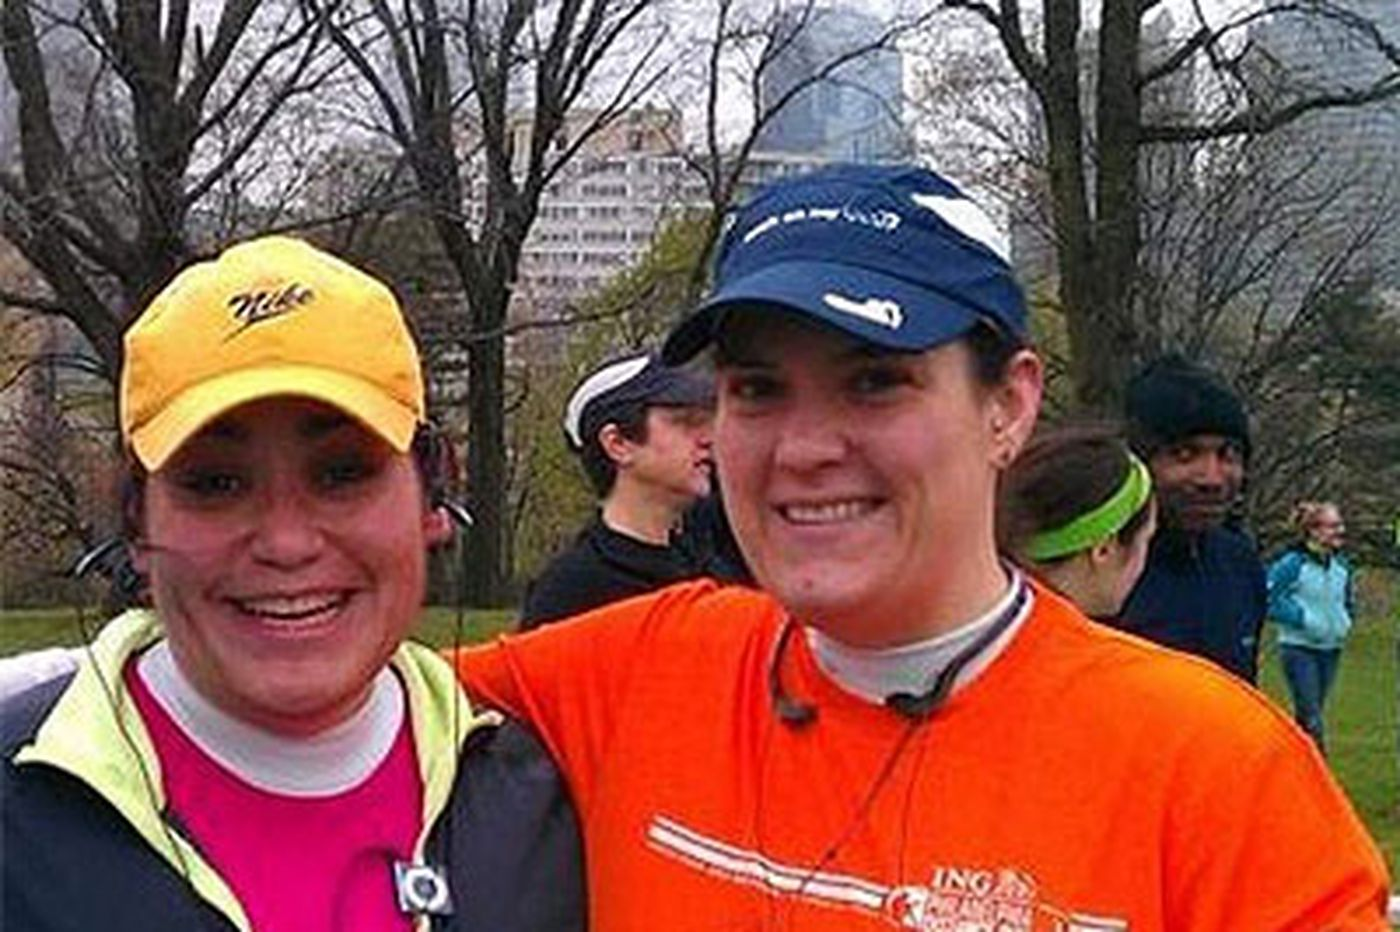 Former classmates find common bond through running